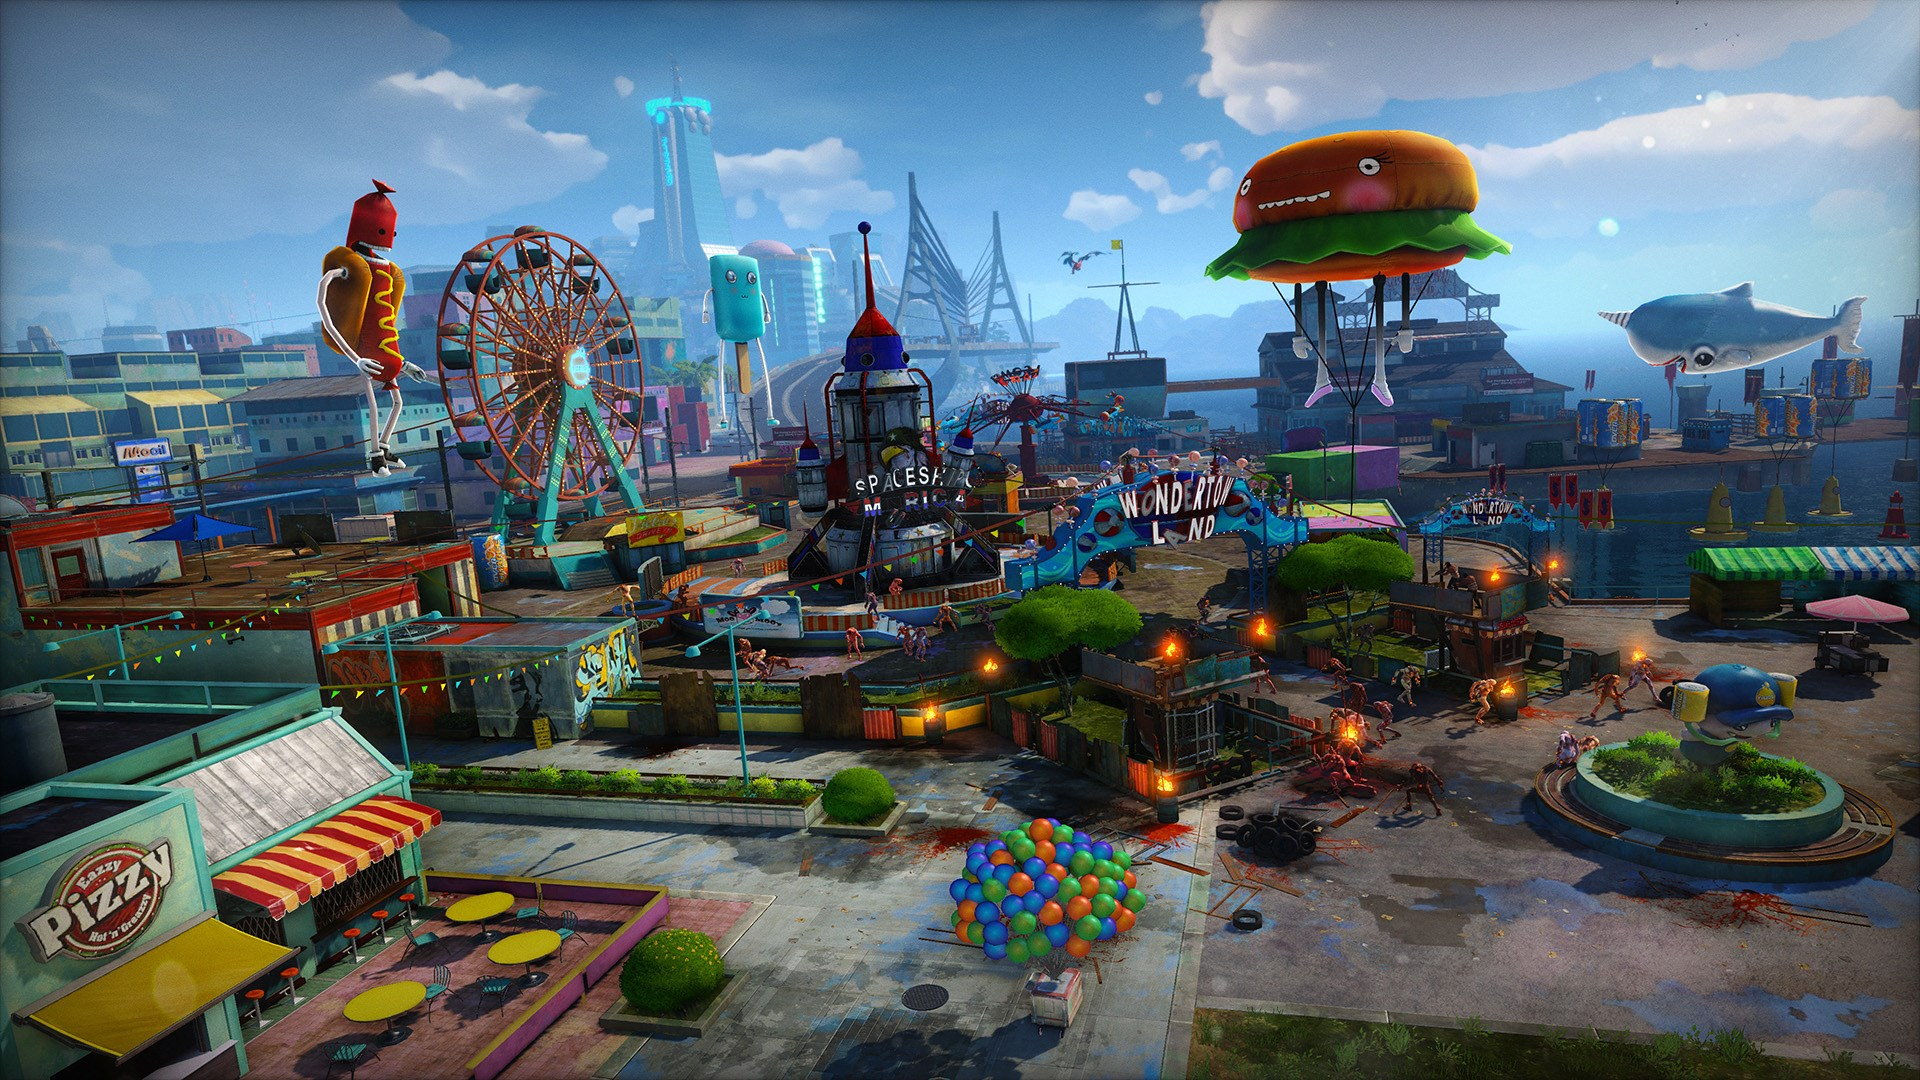 Sunset Overdrive Review: This Game is No Joke